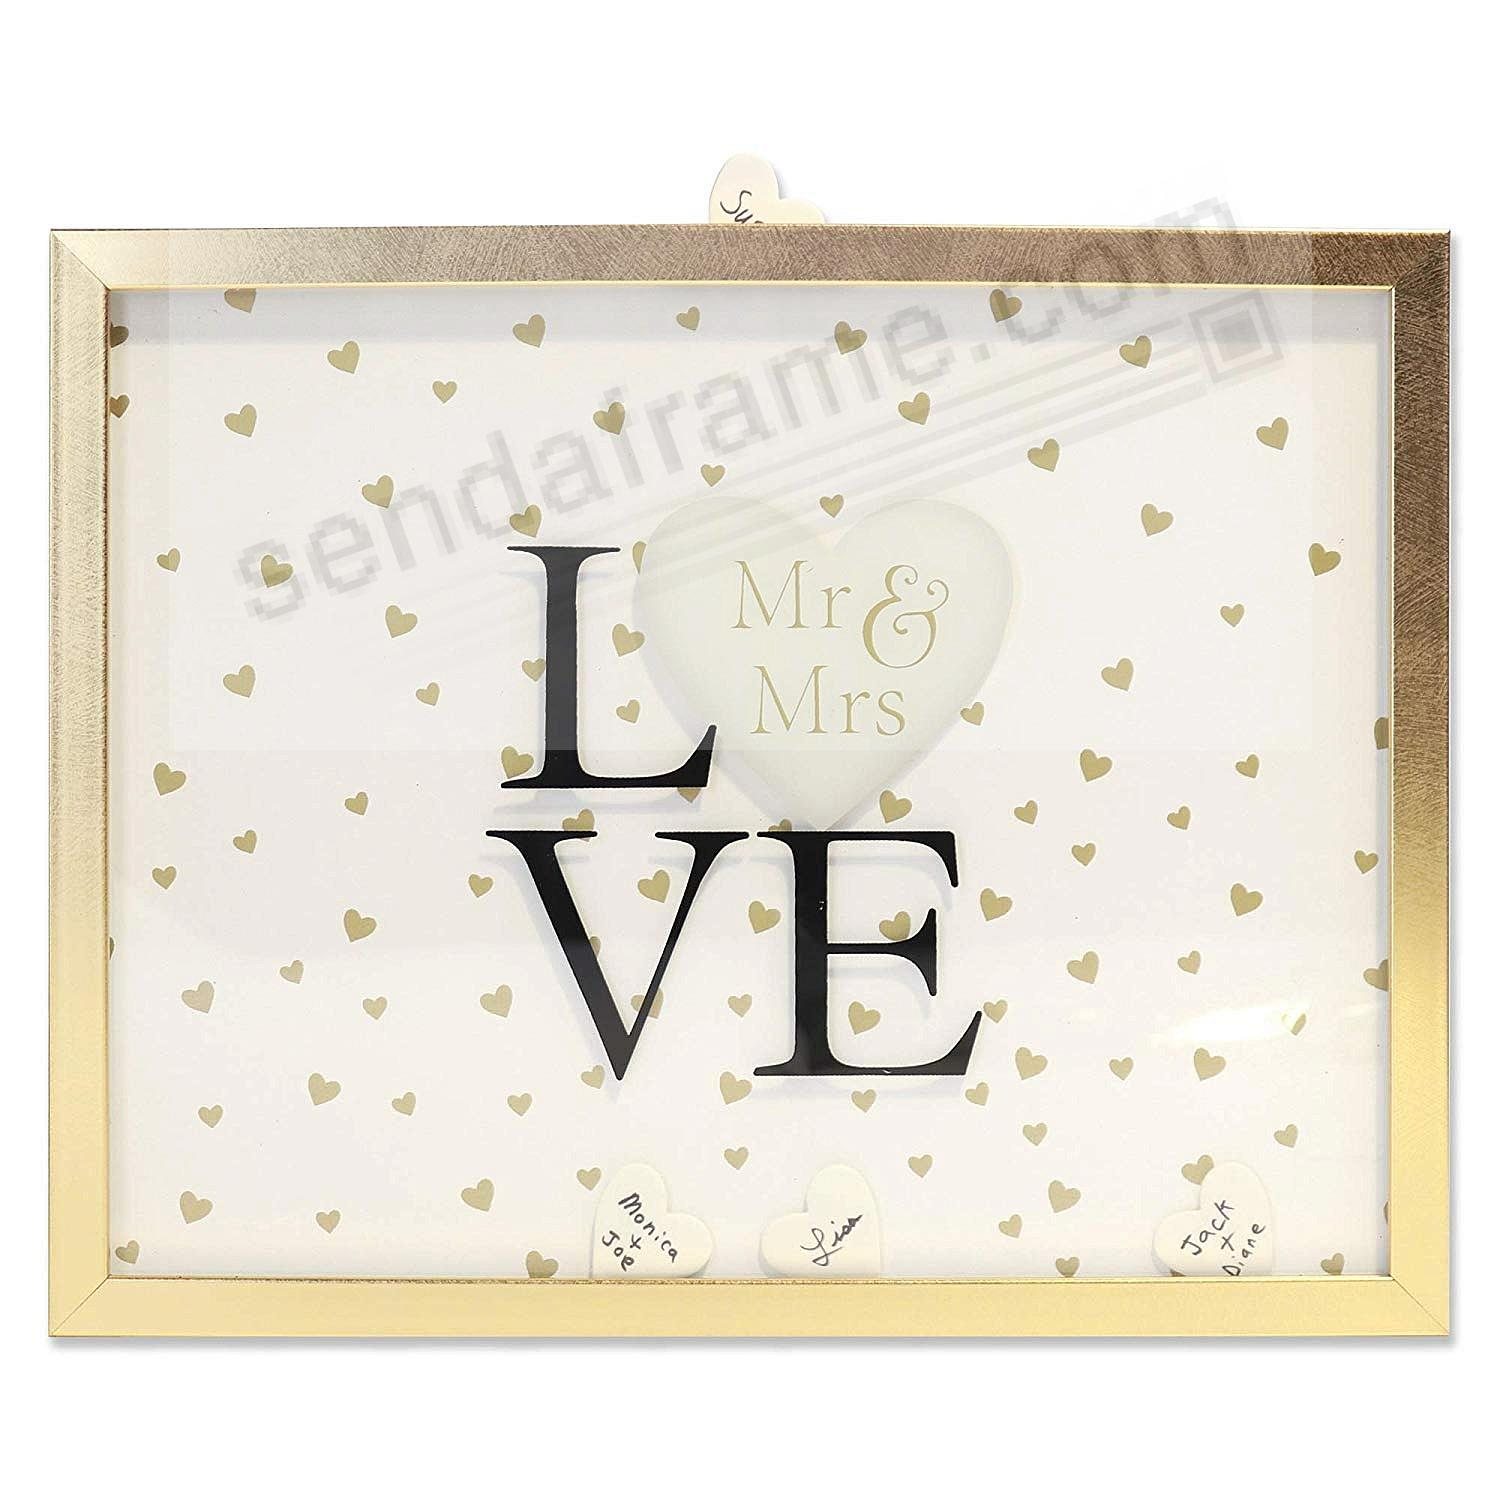 Wedding Shadow Box 10x13 w/Heart Signature Tiles by Lawrence®